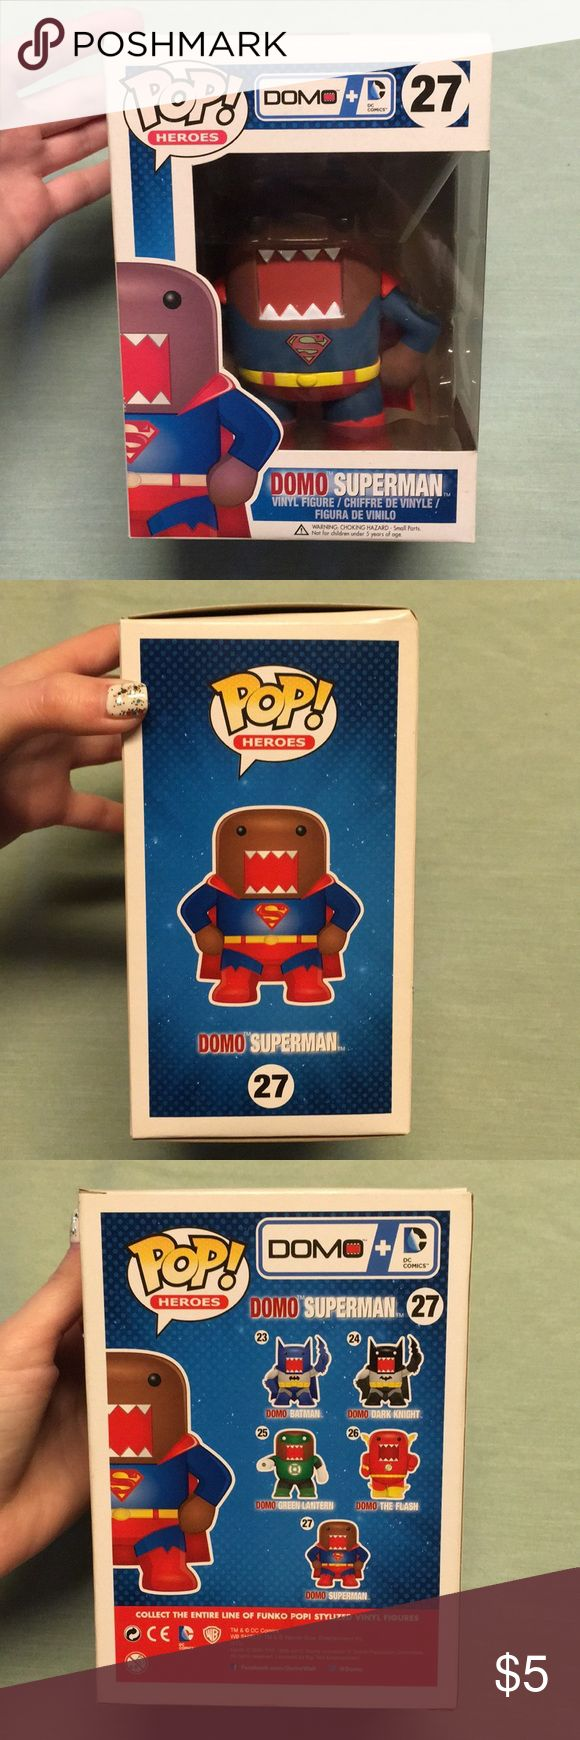 NIB Funko POP DOMO Superman Figure Up for sale is this new in box Funko POP DOMO Superman figure! Never been removed from box. Smoke free home :) Funko POP Other